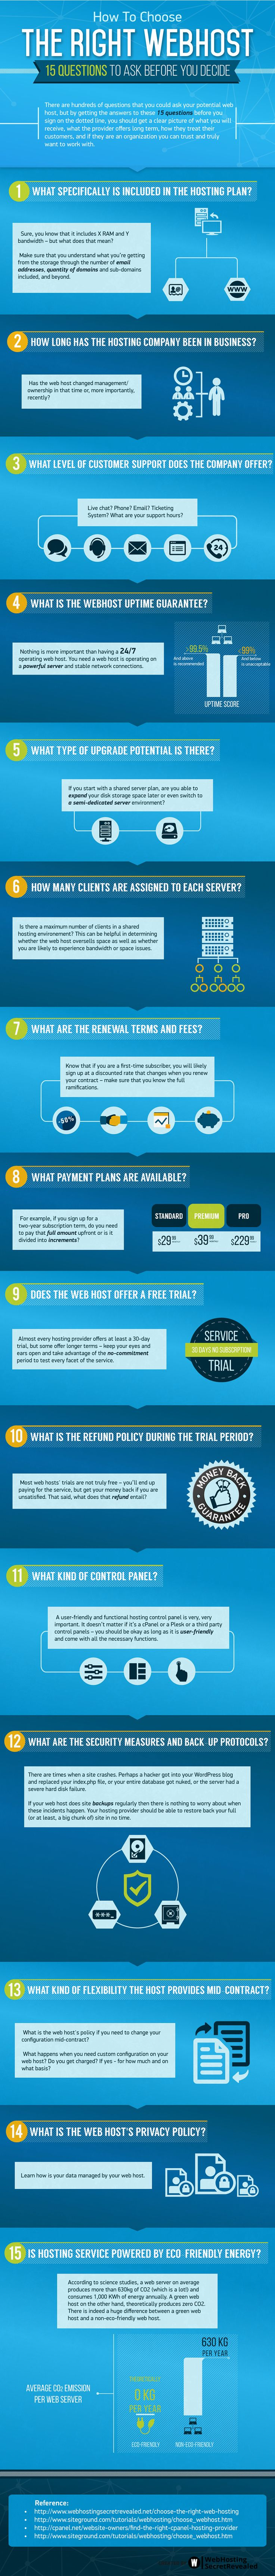 How To Choose the Right Web Host - Do you fancy an infographic? There are a lot ...